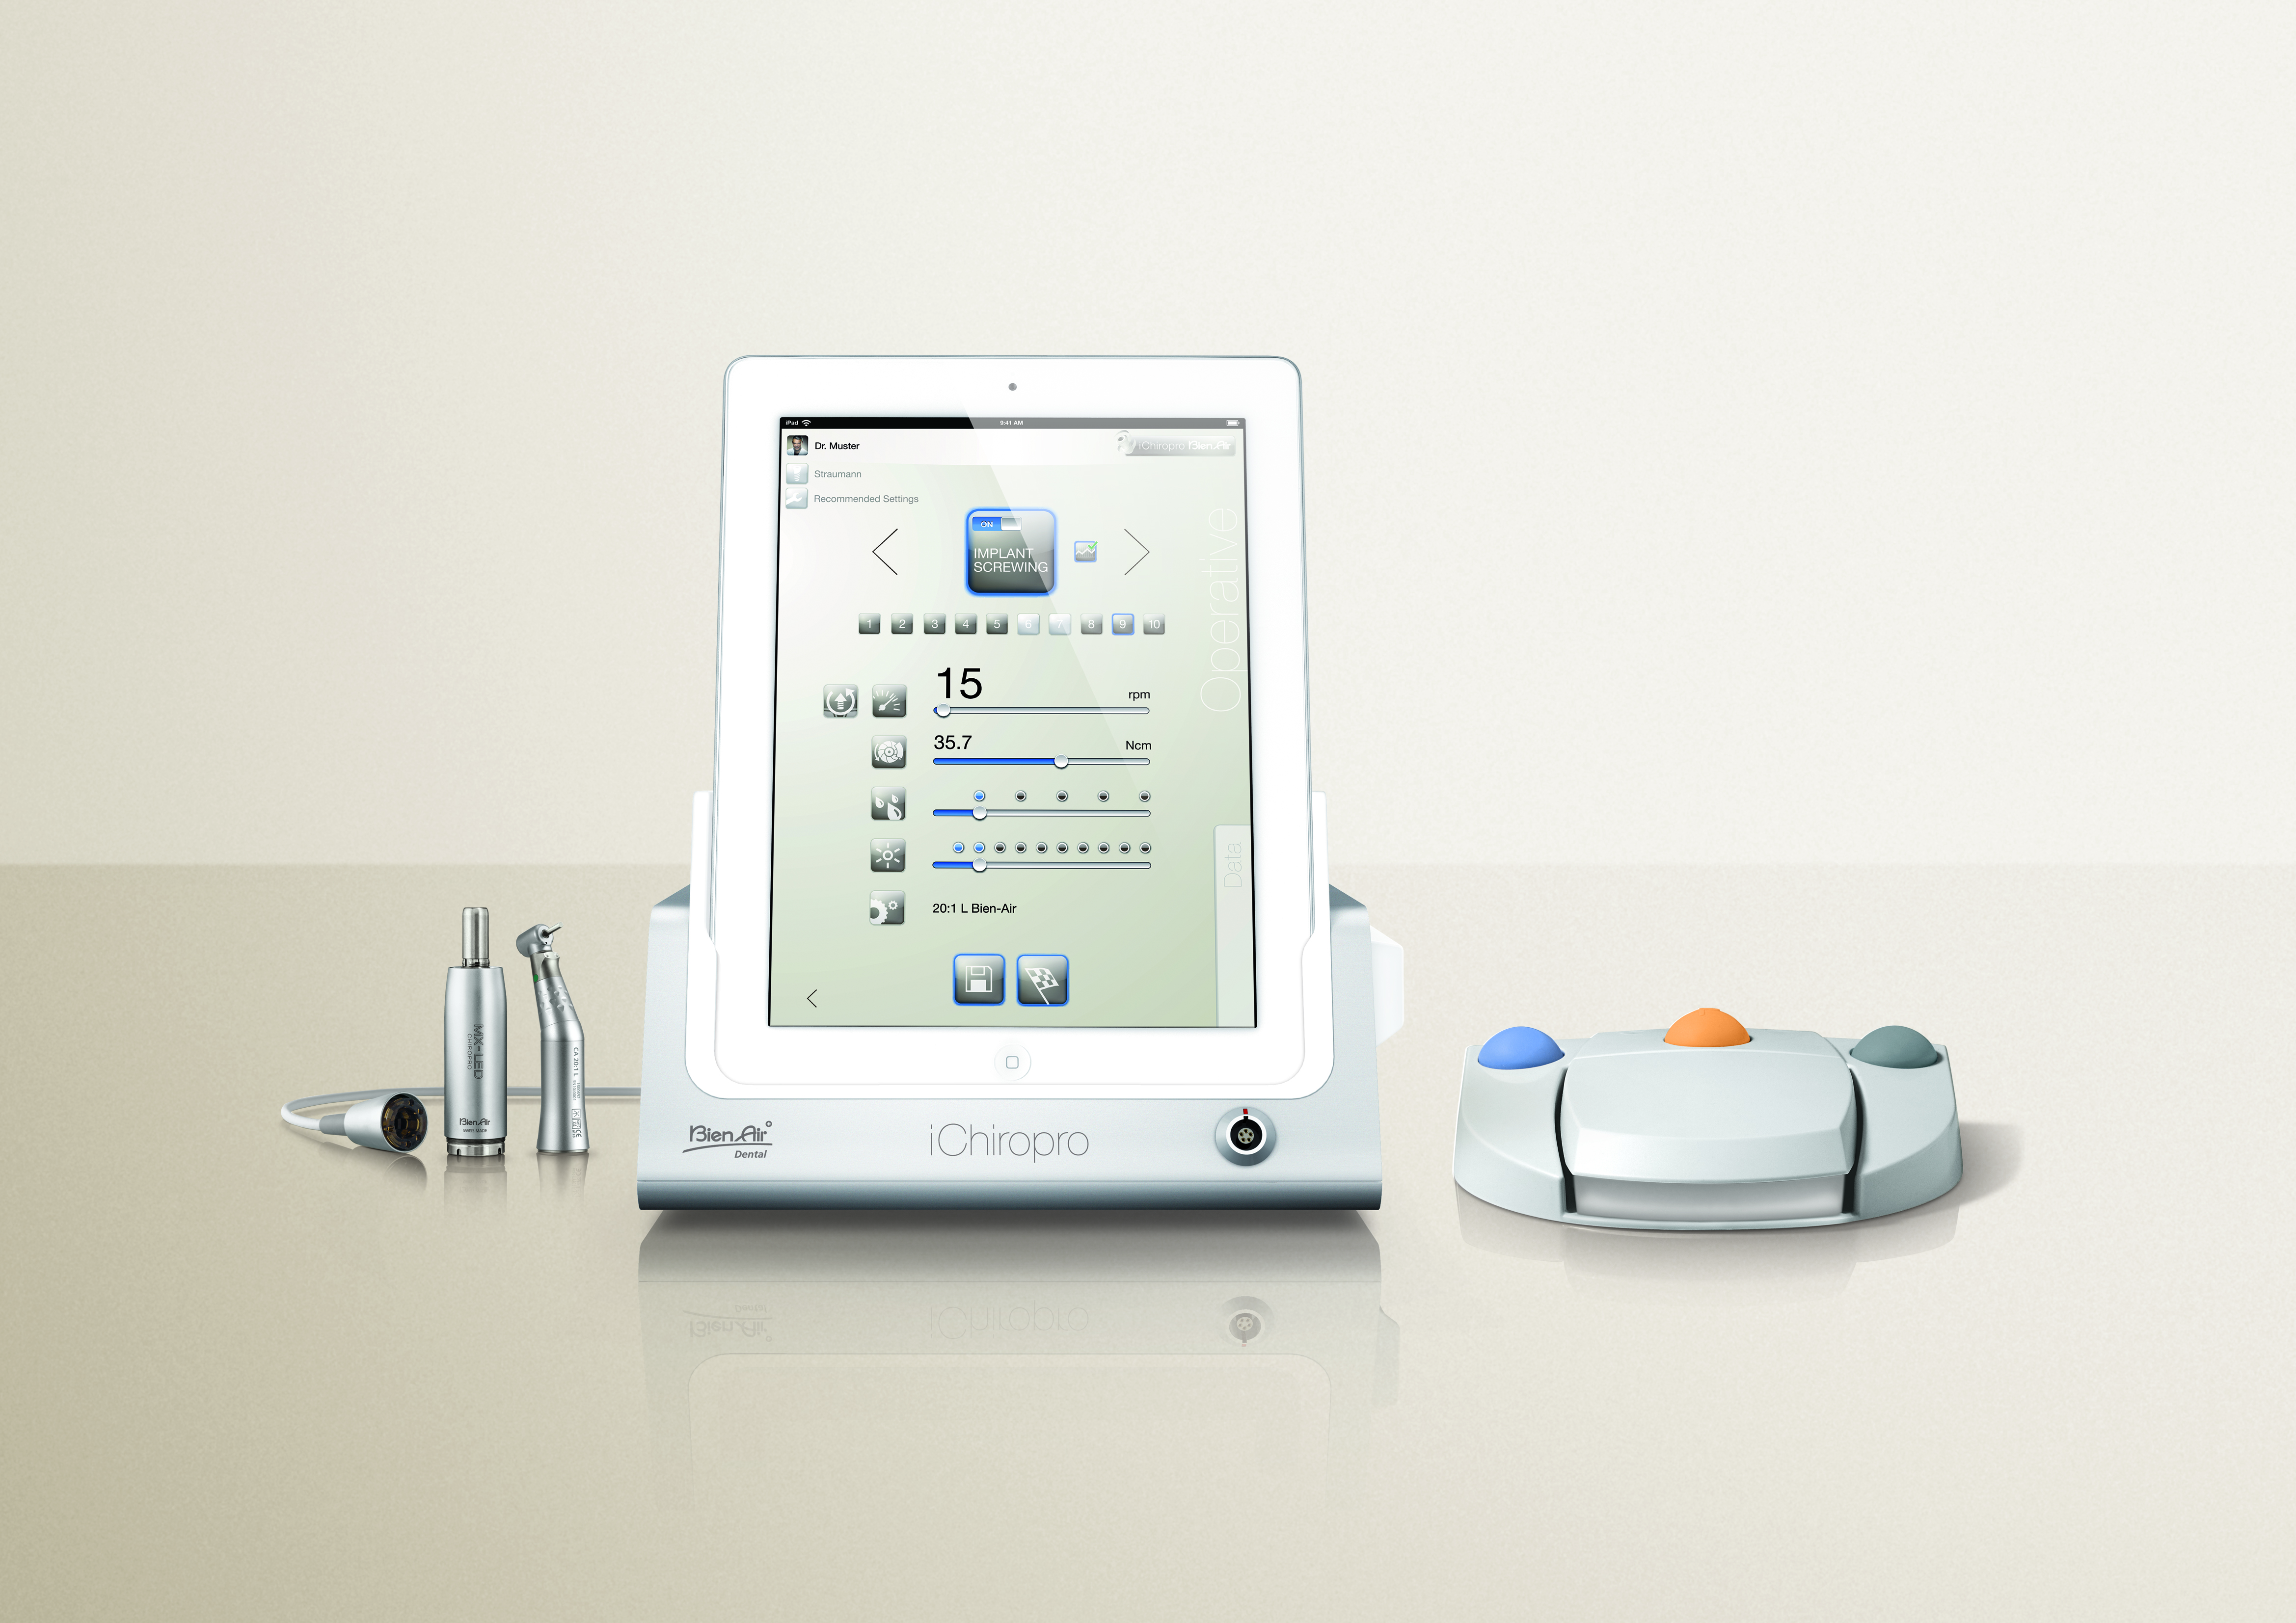 iChiropro Implantology System